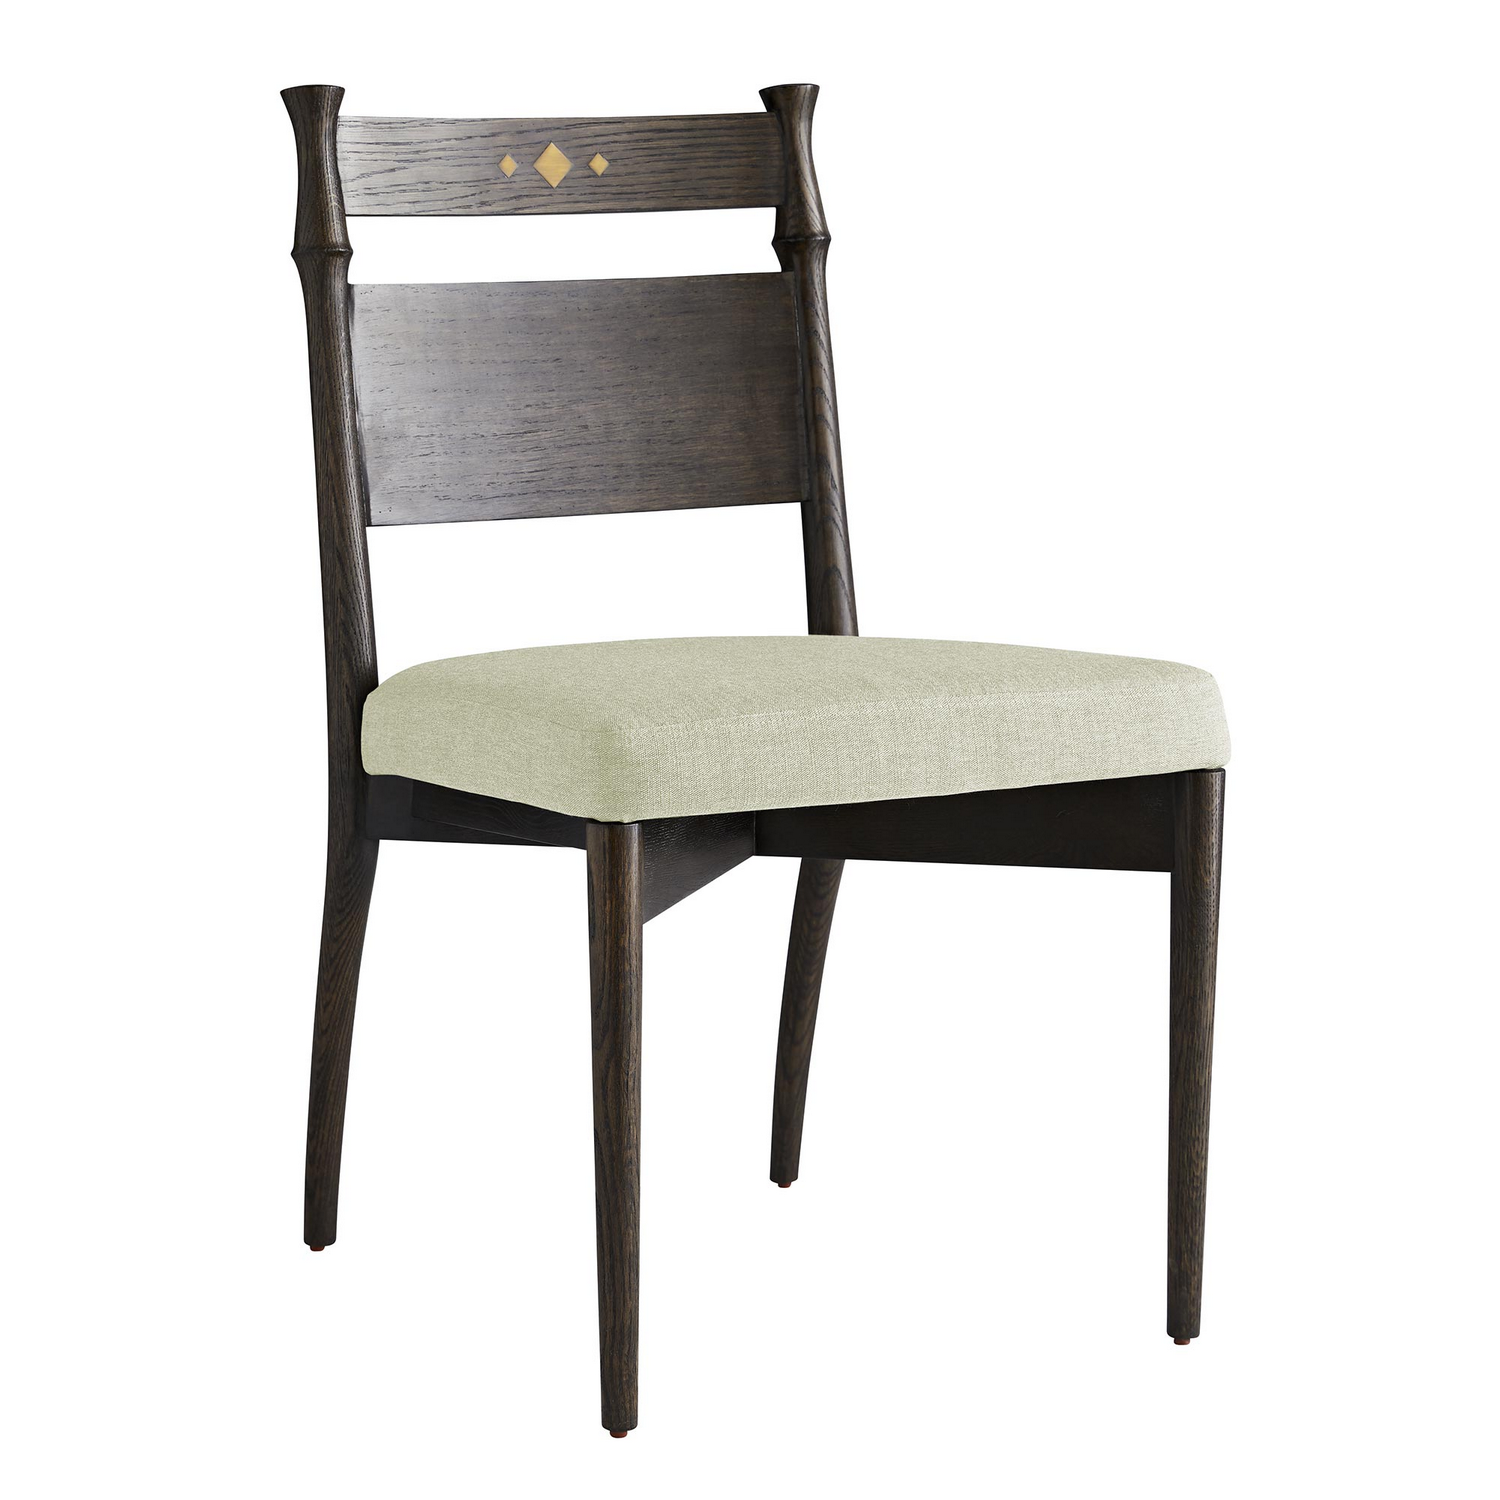 Chair by Arteriors 8094